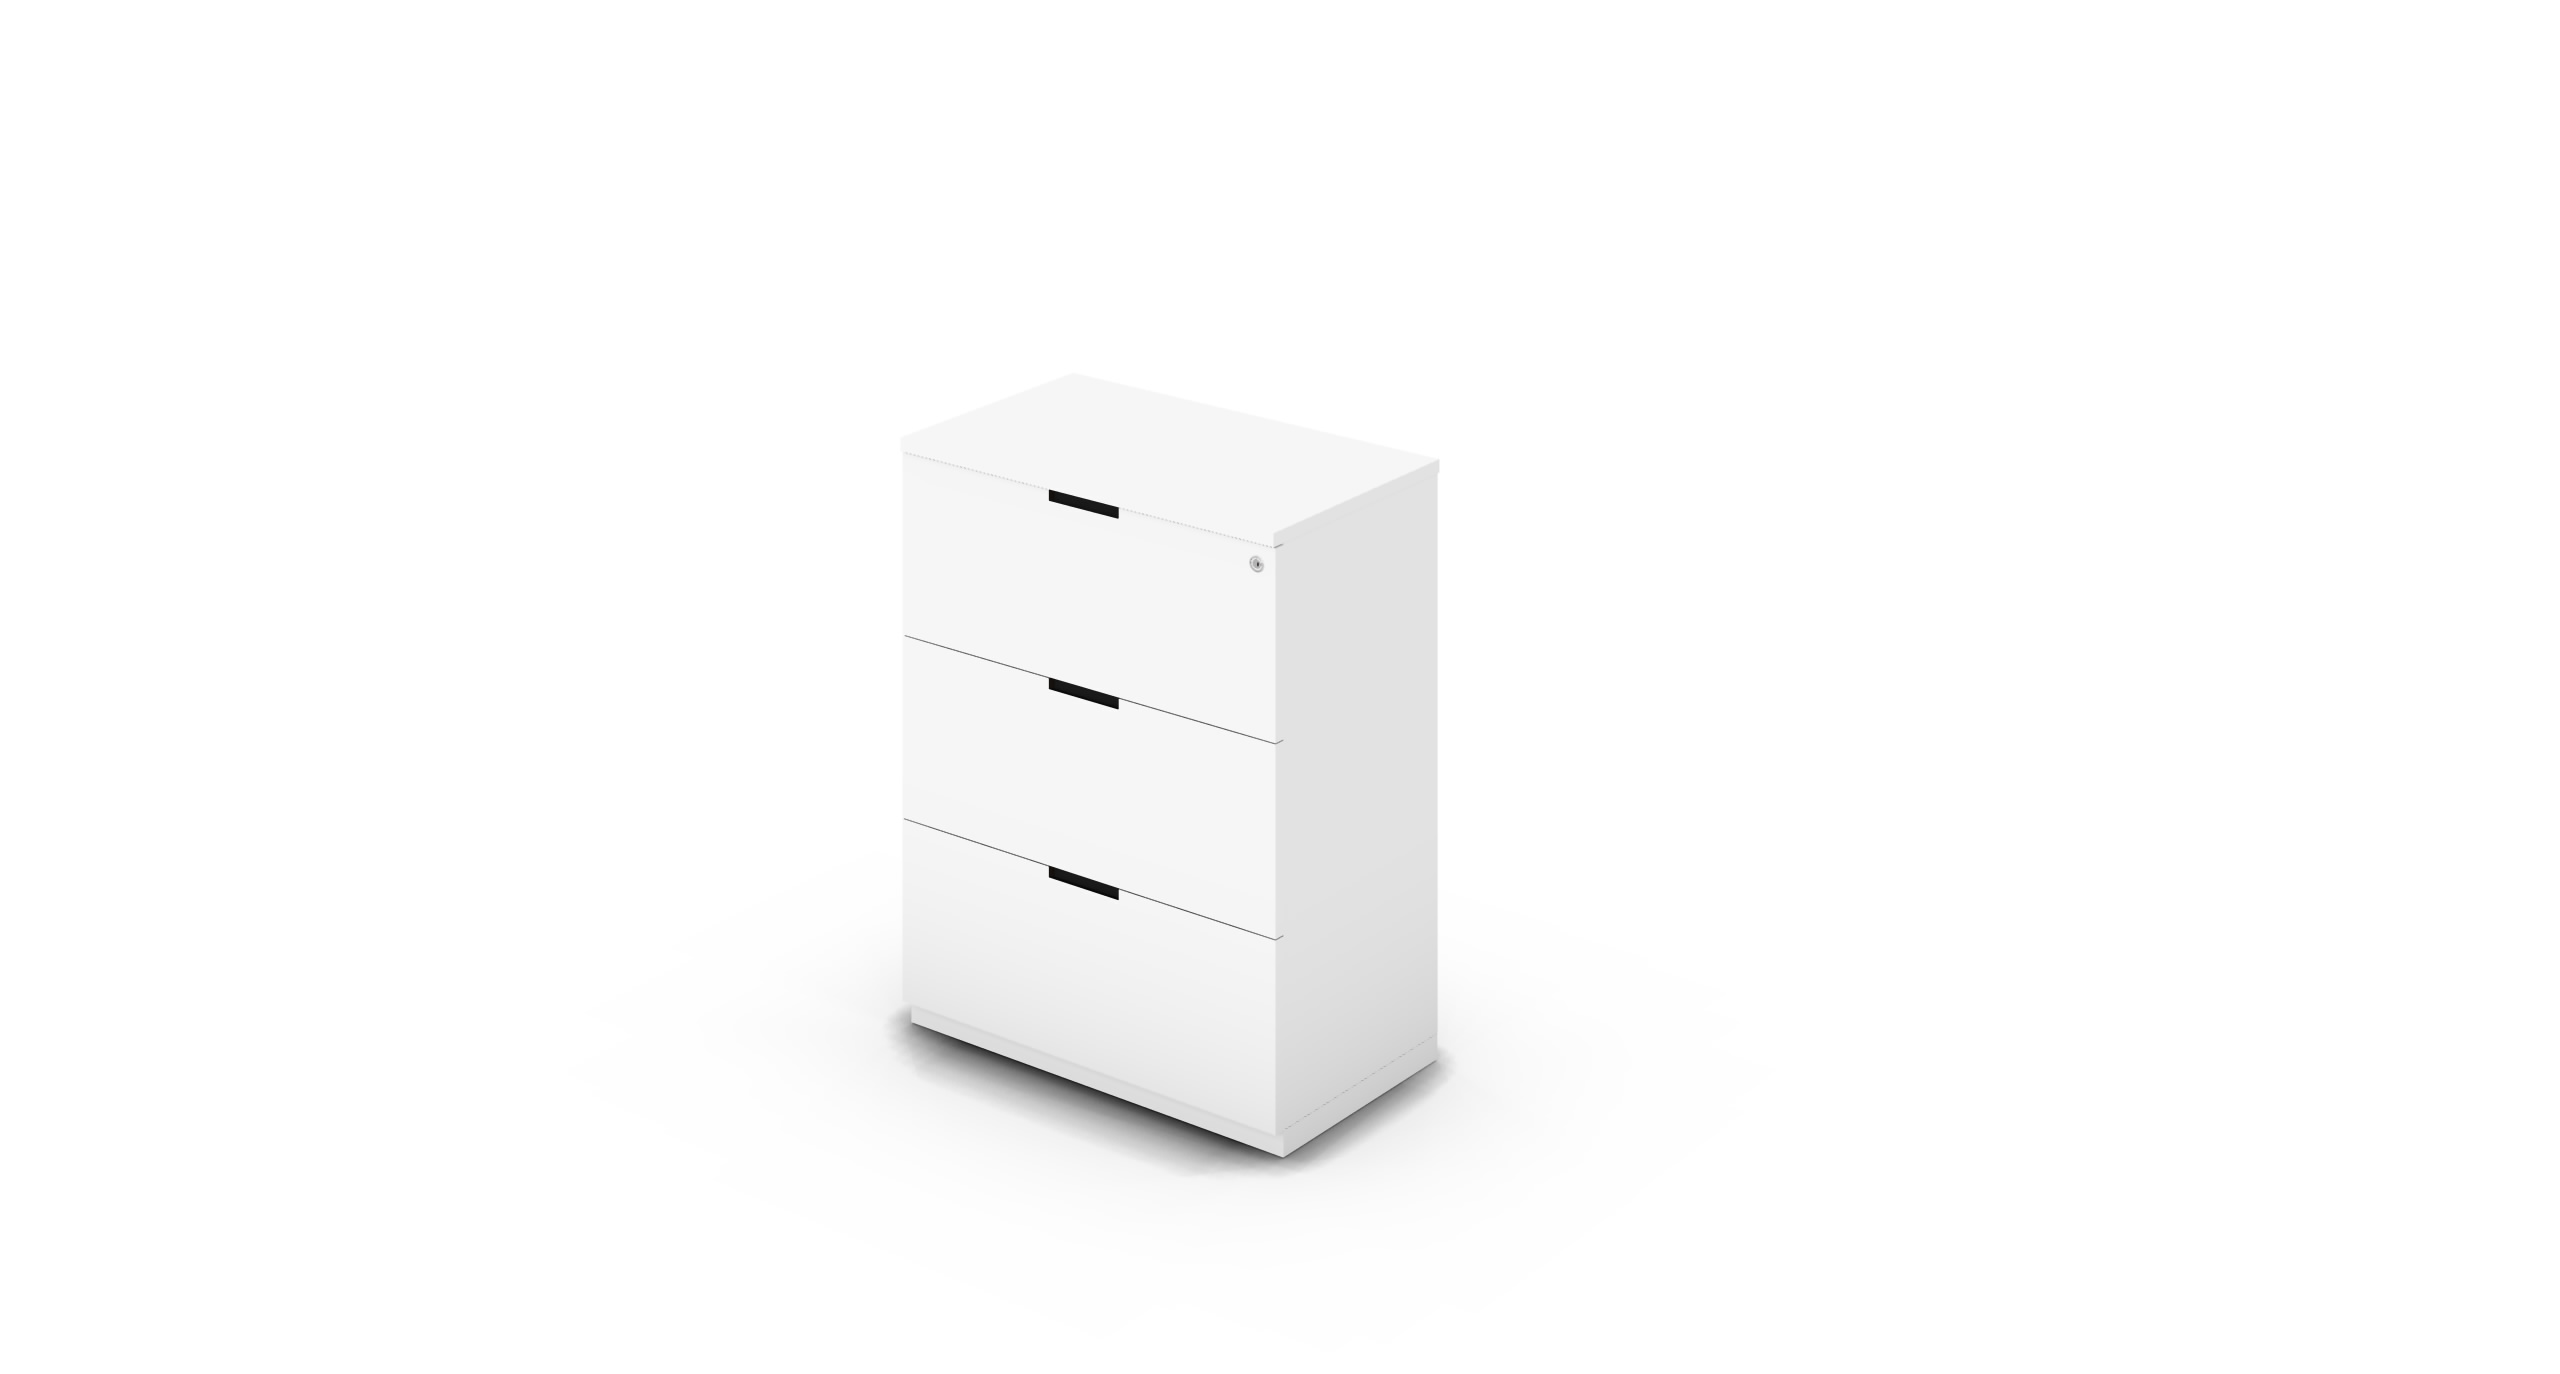 Cabinet_800x450x1125_DR_White_CutOut_WithCylinder